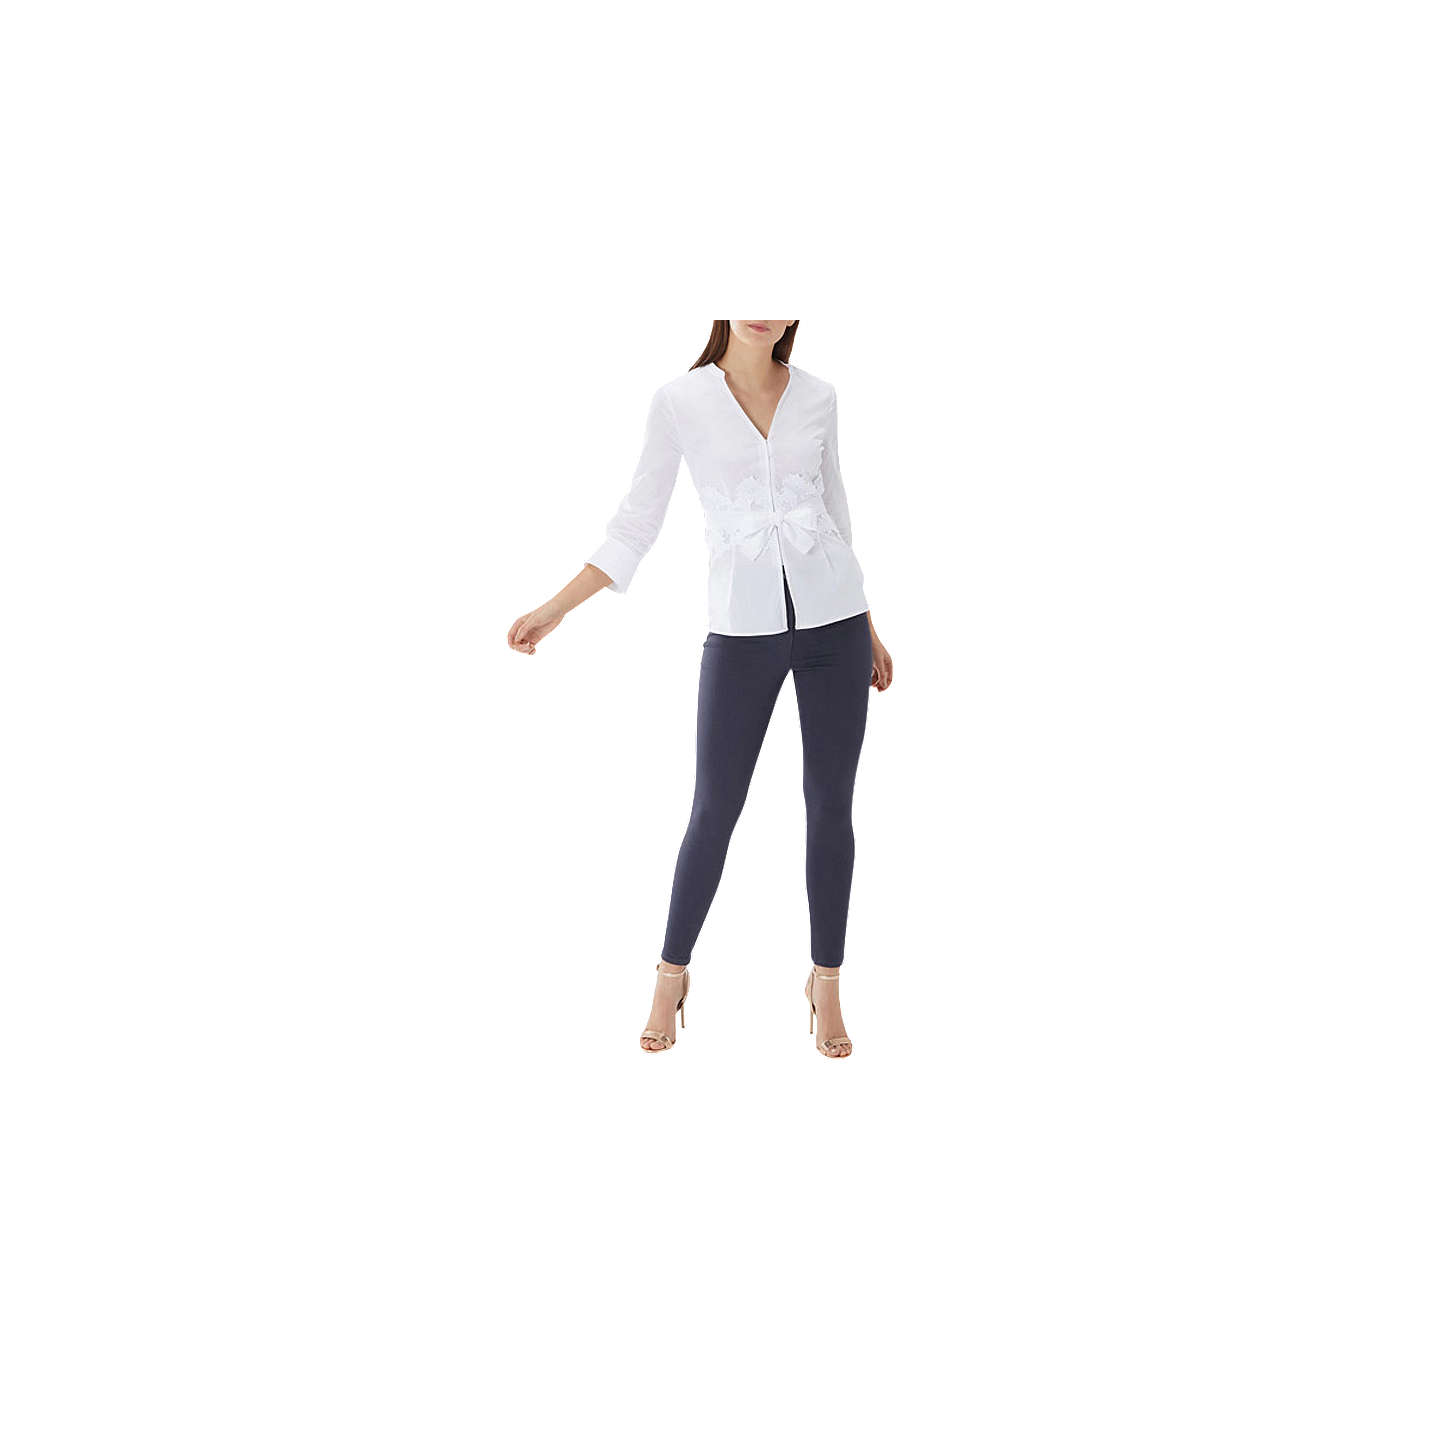 BuyCoast Ivory Naomi Belted Shirt, Ivory, 6 Online at johnlewis.com